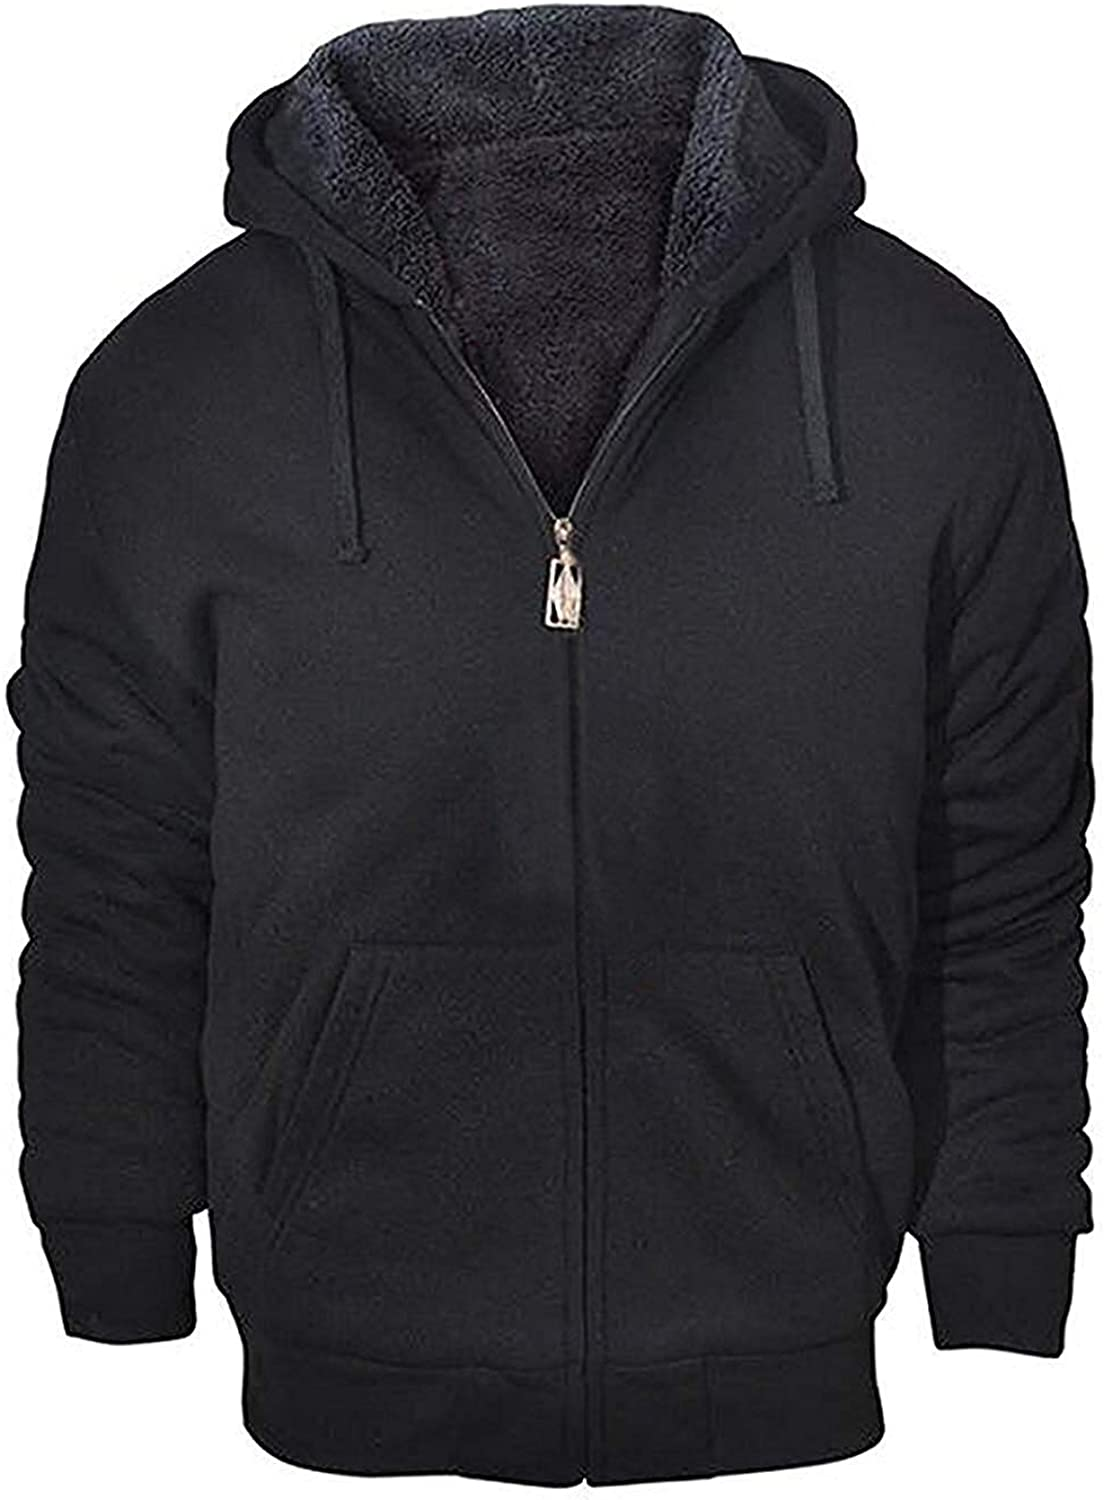 GEEK LIGHTING Hoodies for Men Heavyweight Fleece Sweatshirt - Full Zip Up Thick Sherpa Lined at  Men's Clothing store